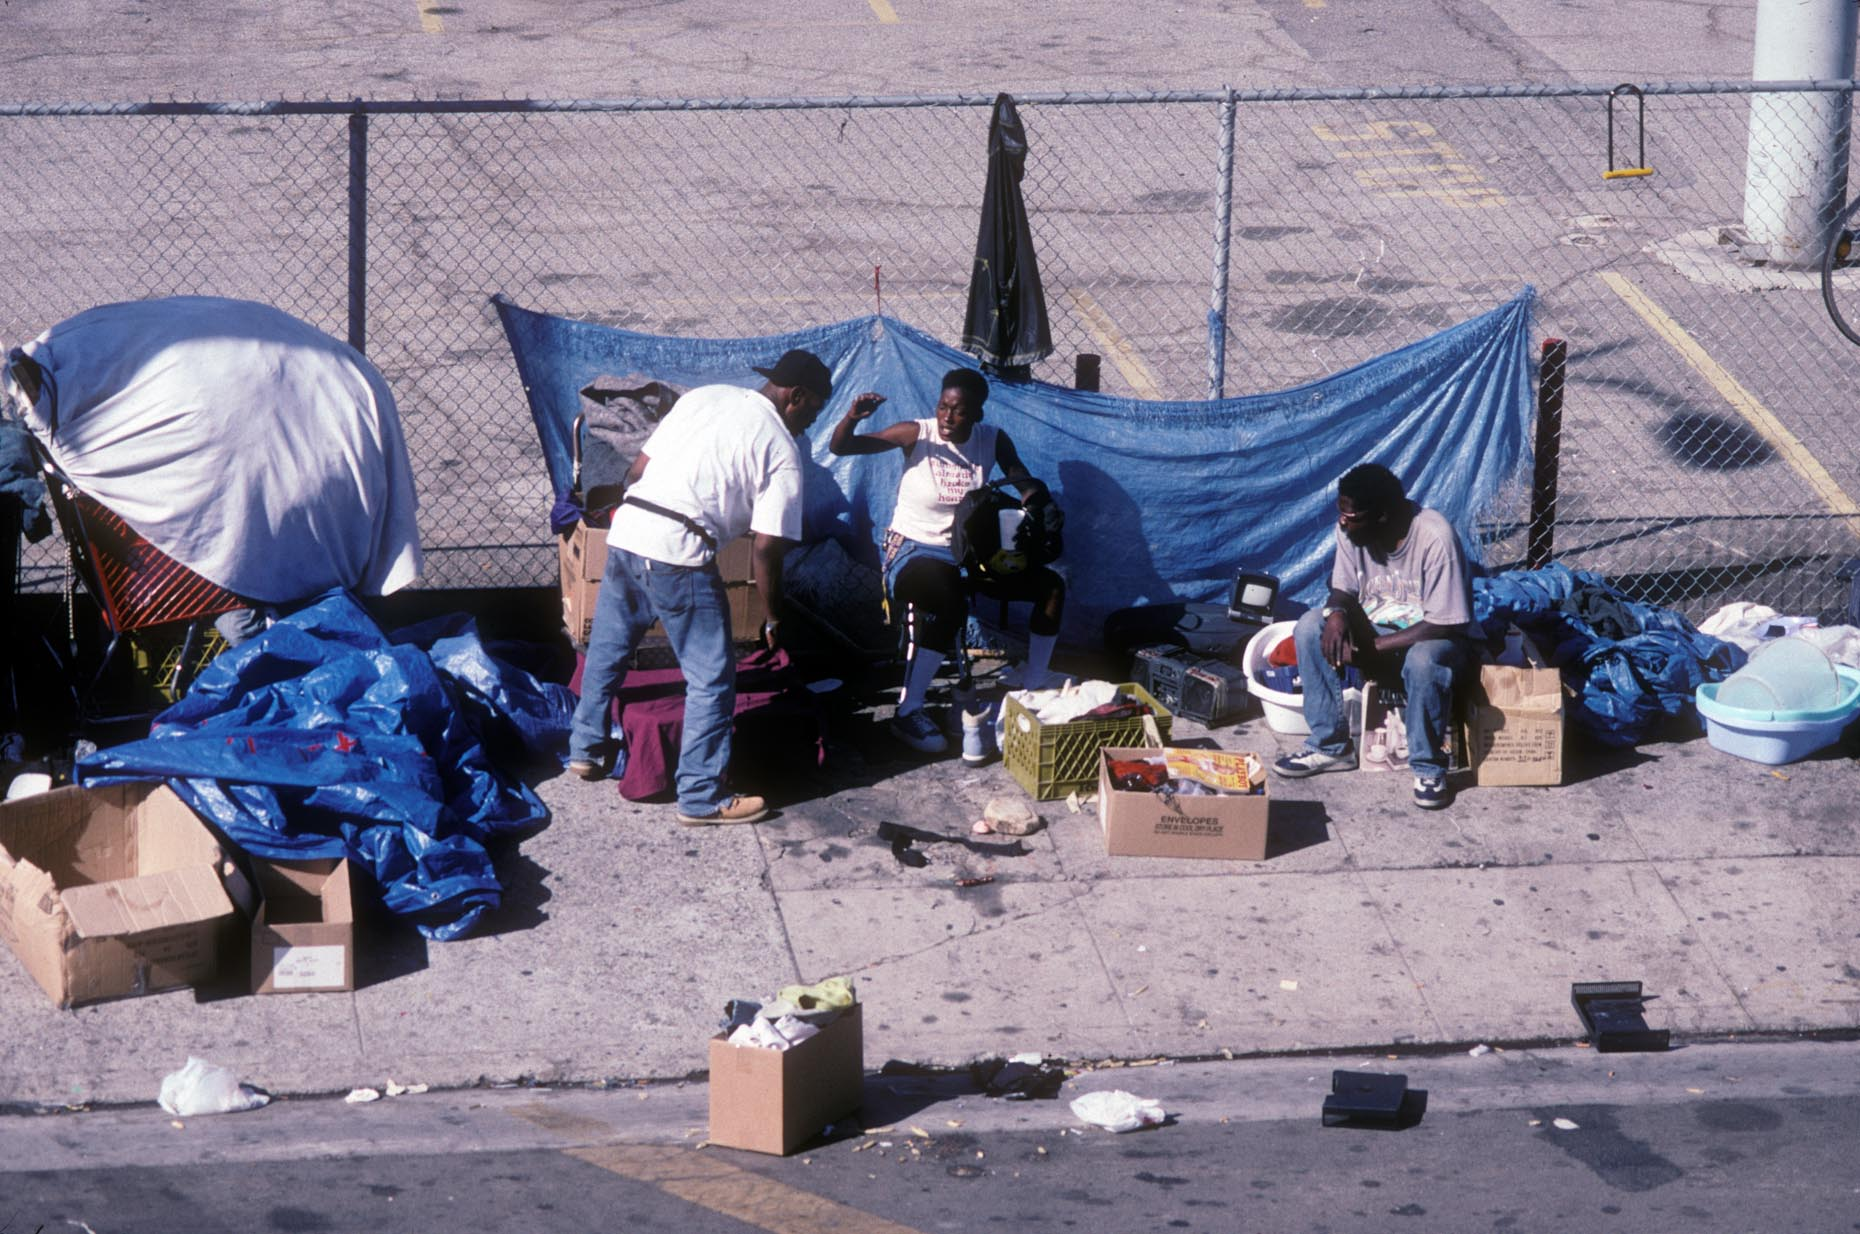 02_SW corner of 3rd St and Main St-DUP5., Skid Row, 2003.jpg